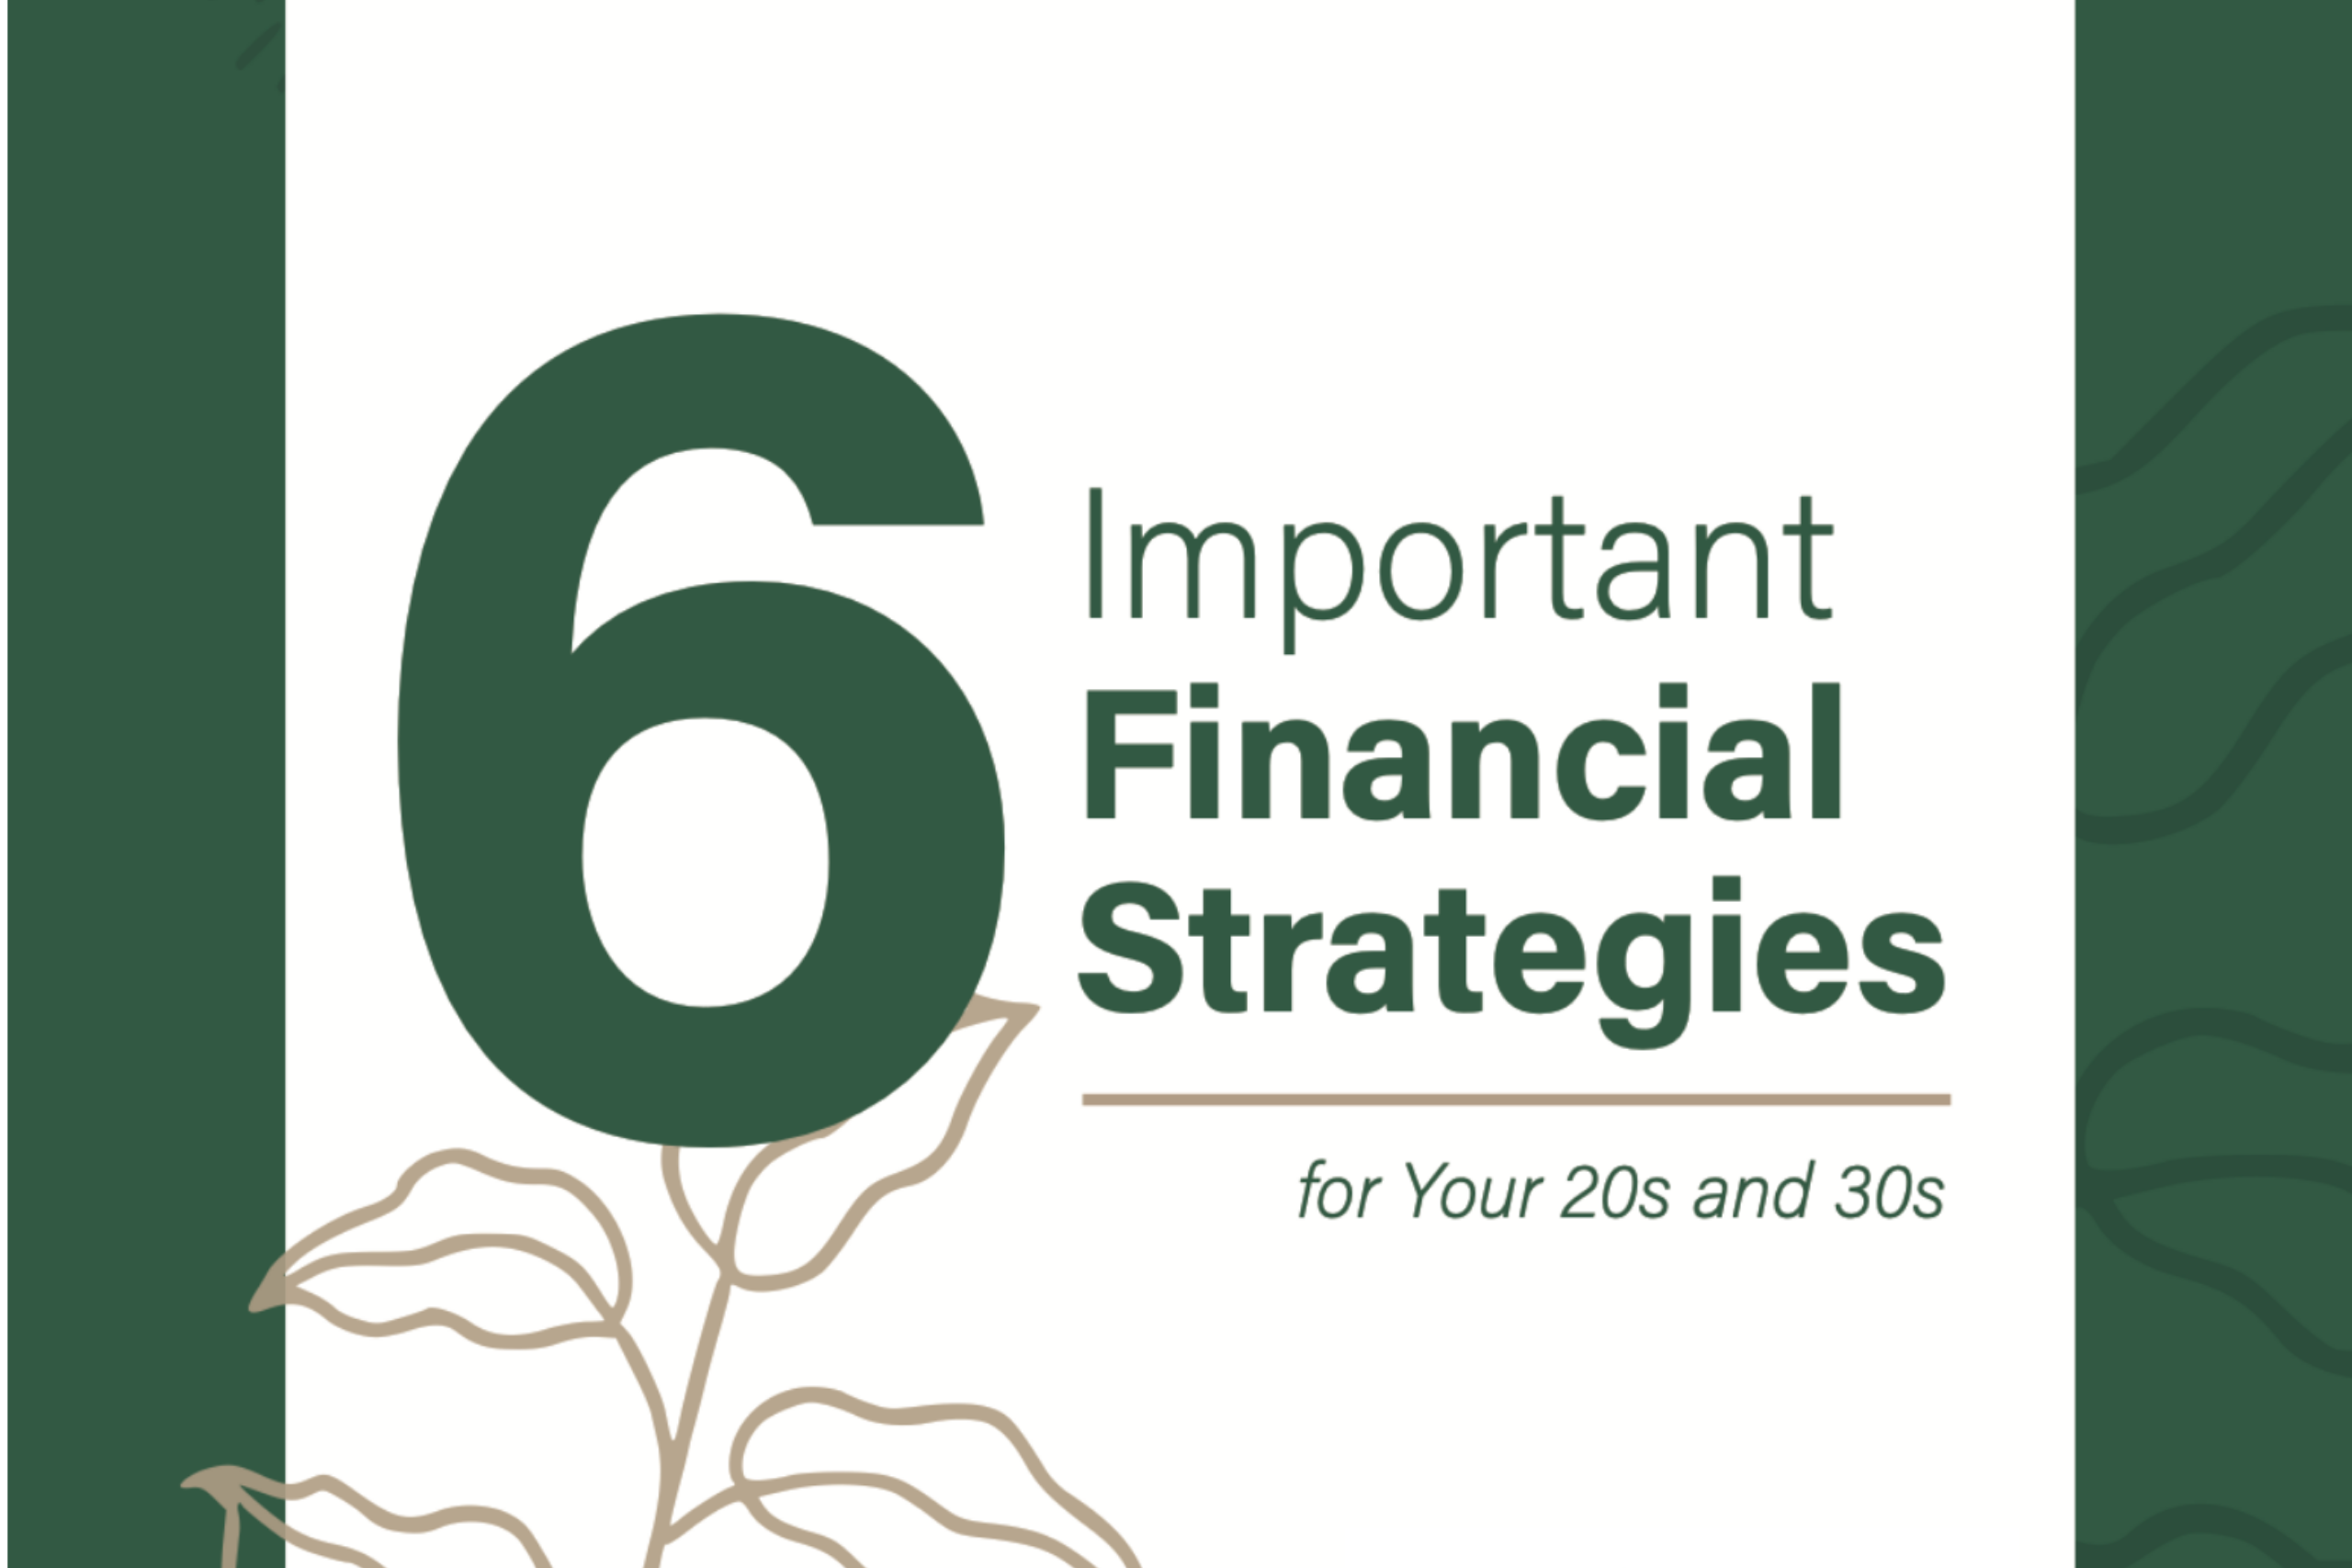 6 Important Financial Strategies